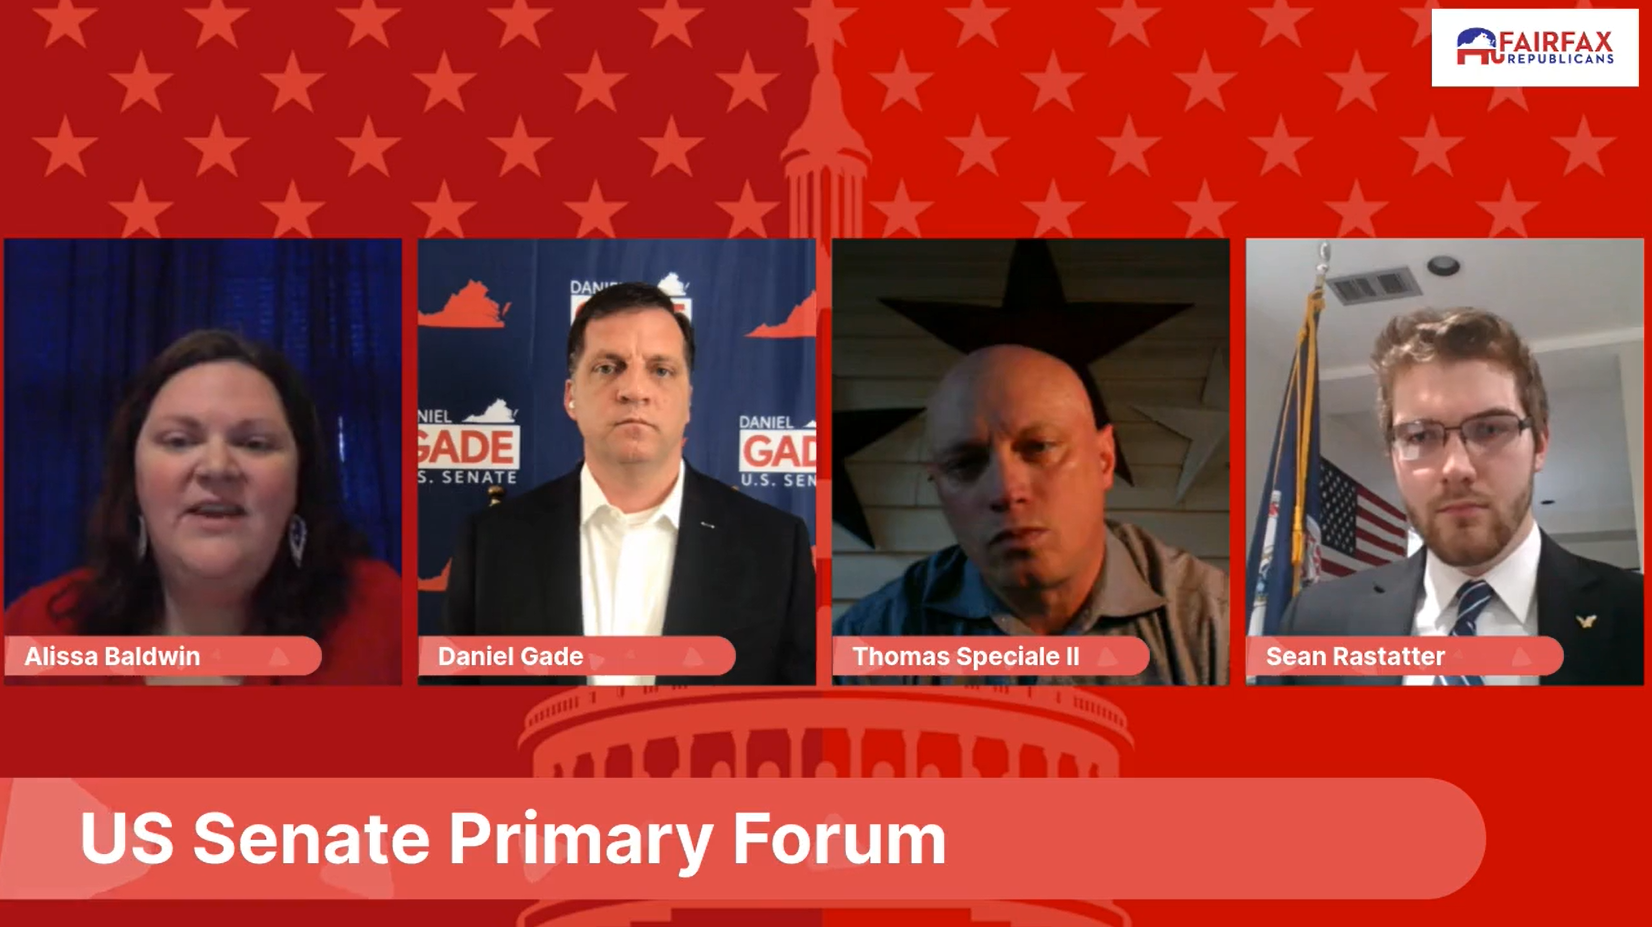 VIDEO: Fairfax GOP Hosts U.S. Senate Candidates Forum